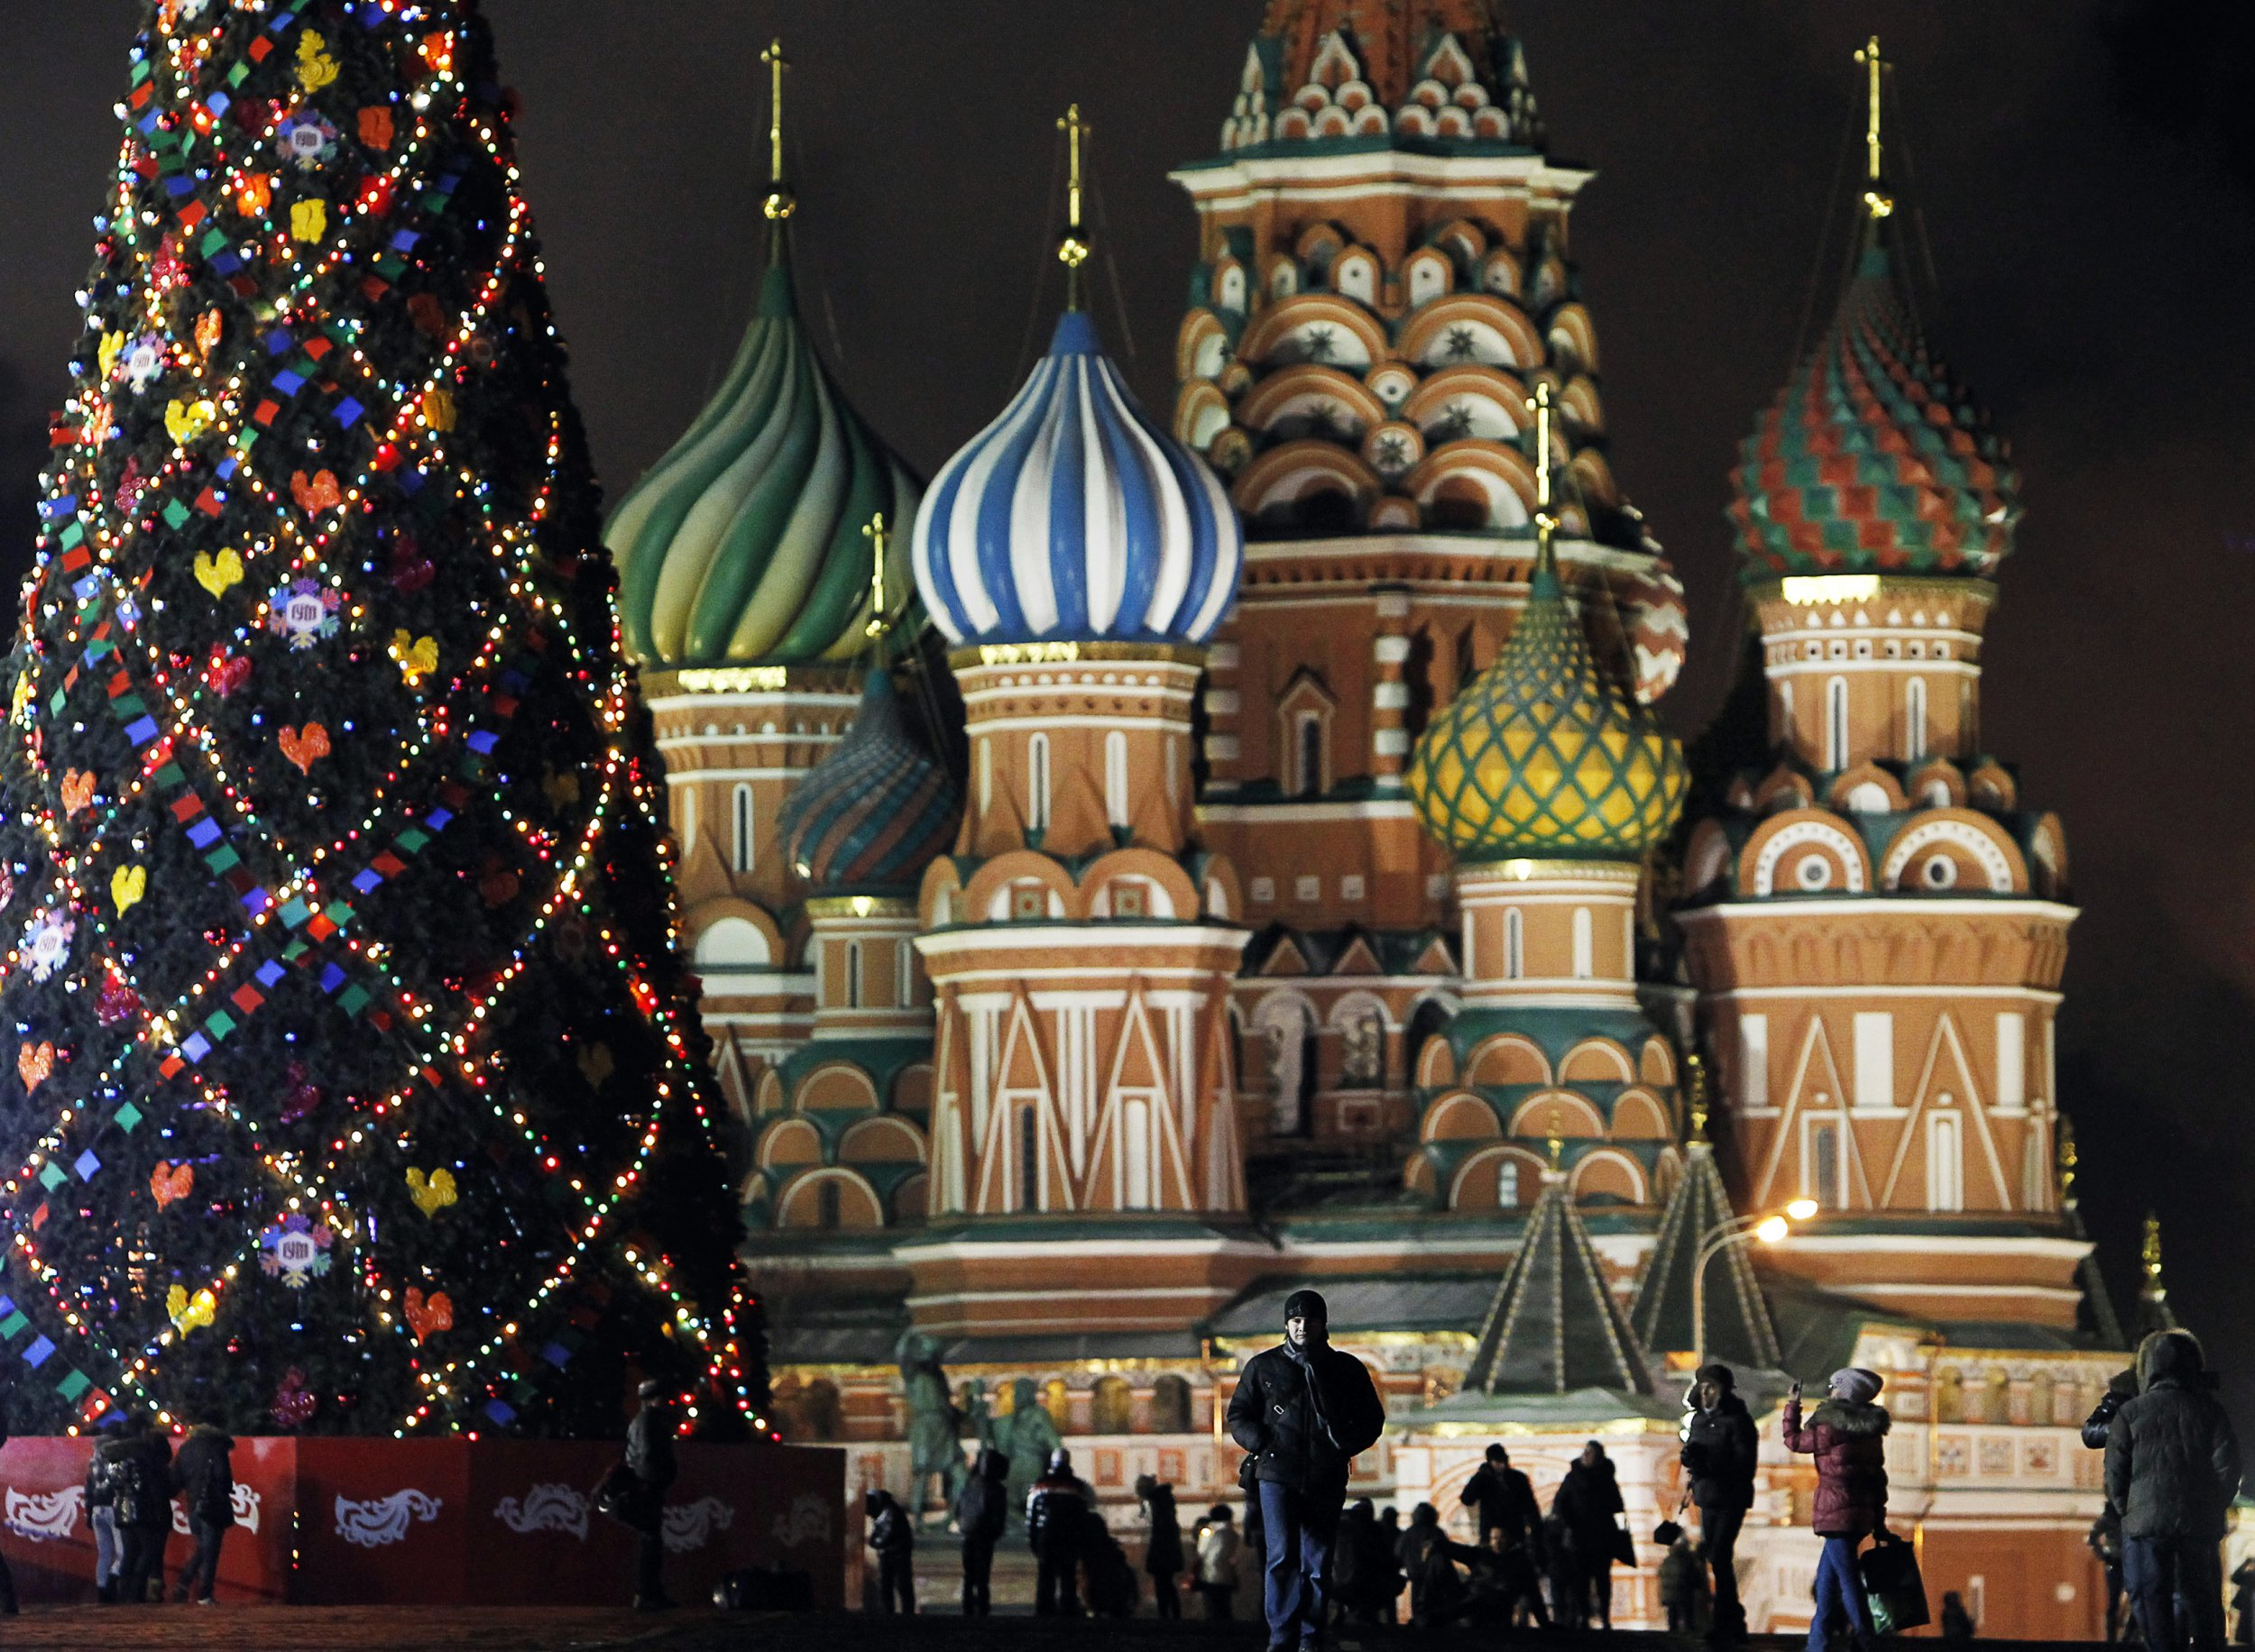 Christmas tree in front of famous Church in Russia